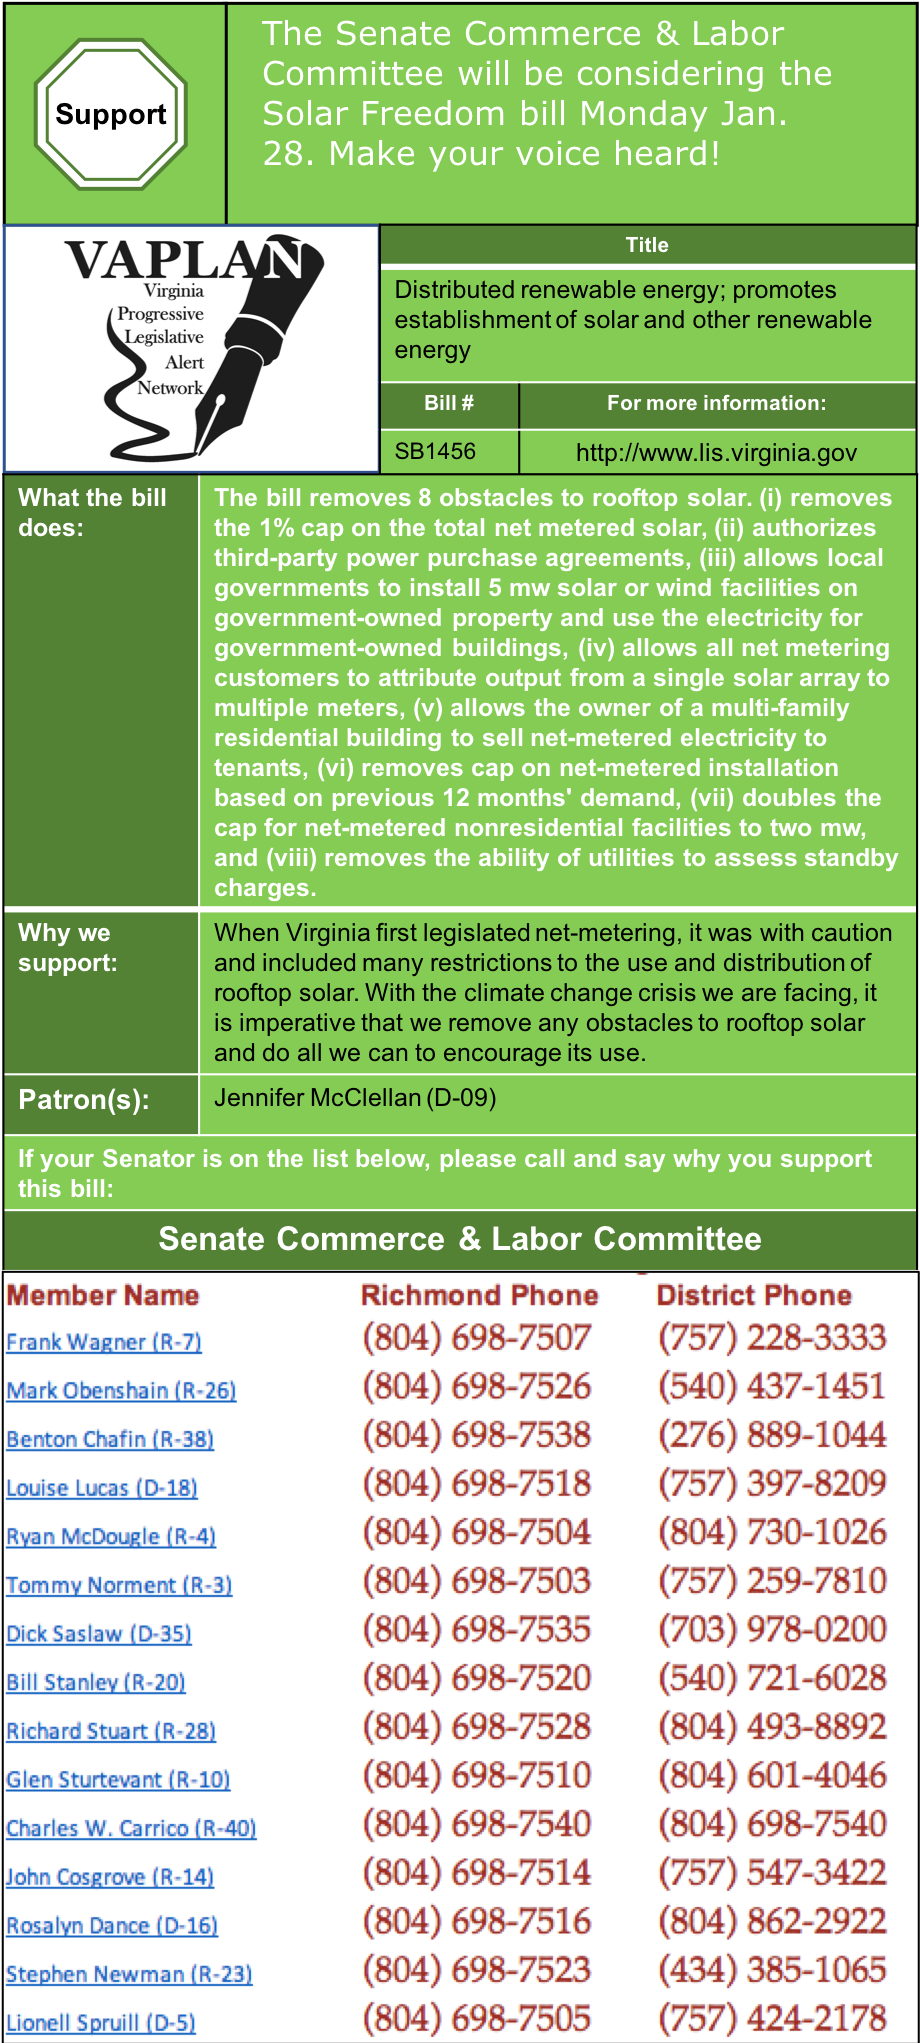 ALERT: Senate Commerce & Labor to consider Solar Freedom bill, Monday Jan. 28.